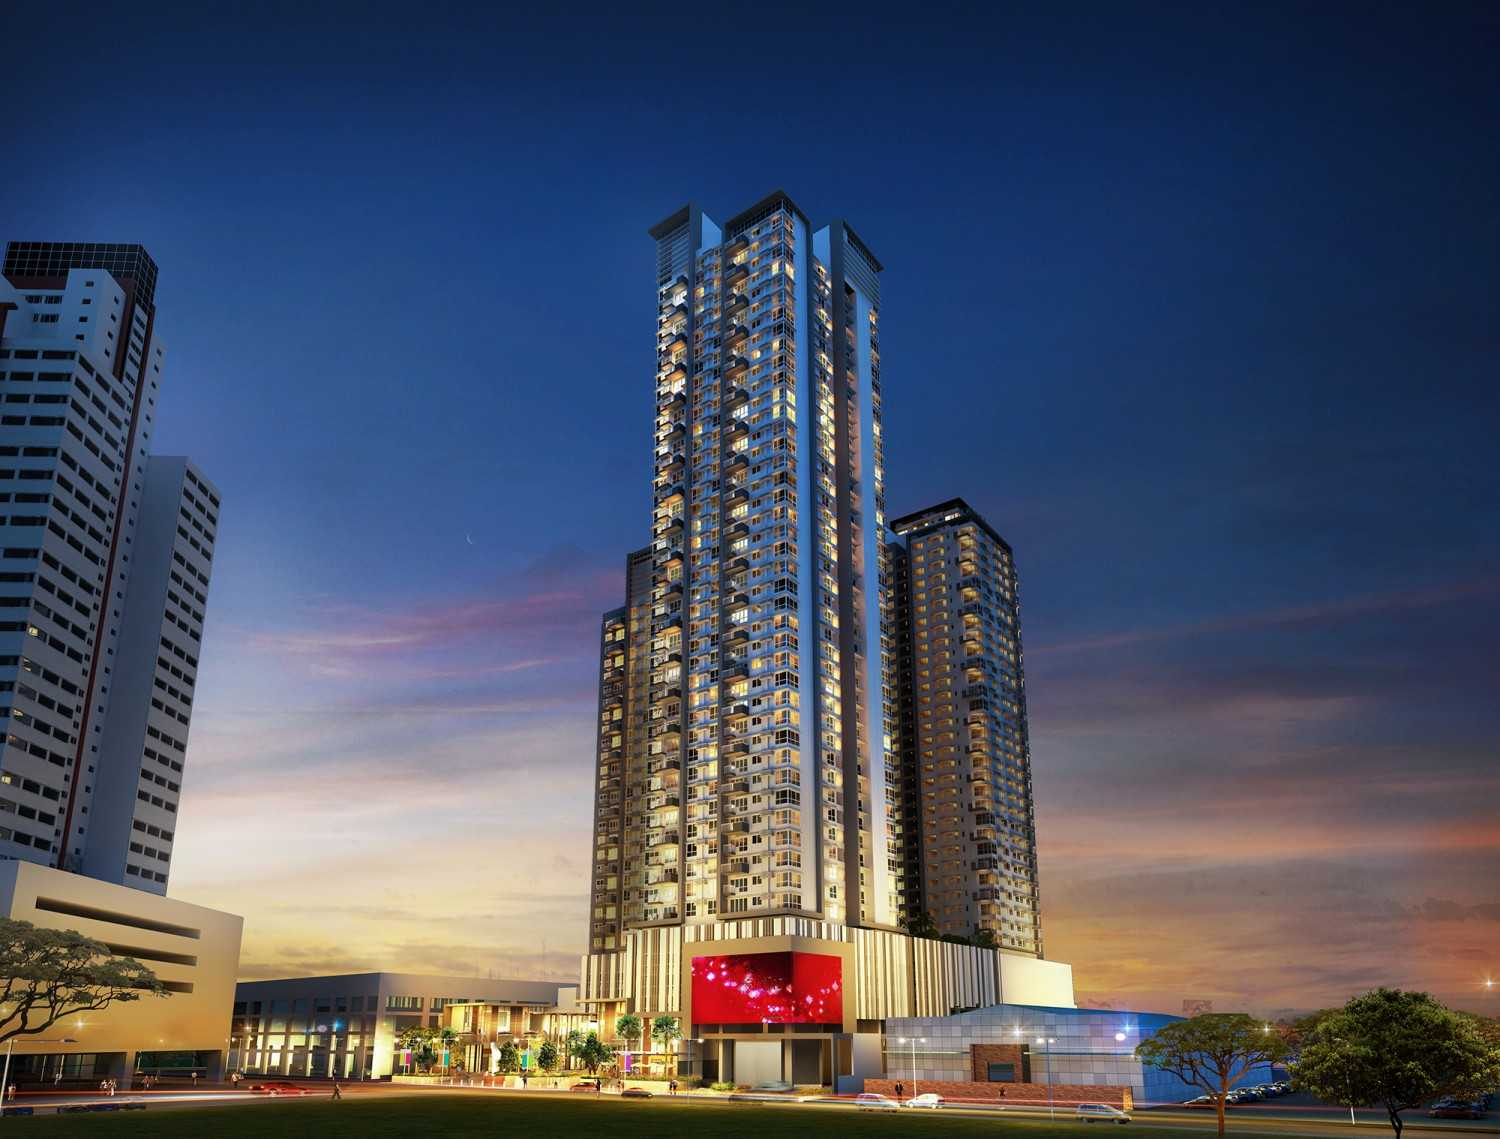 https://www.alveoland.com.ph/images/article/images/the%20lerato%20condo%20in%20makati-1600860323004.jpg